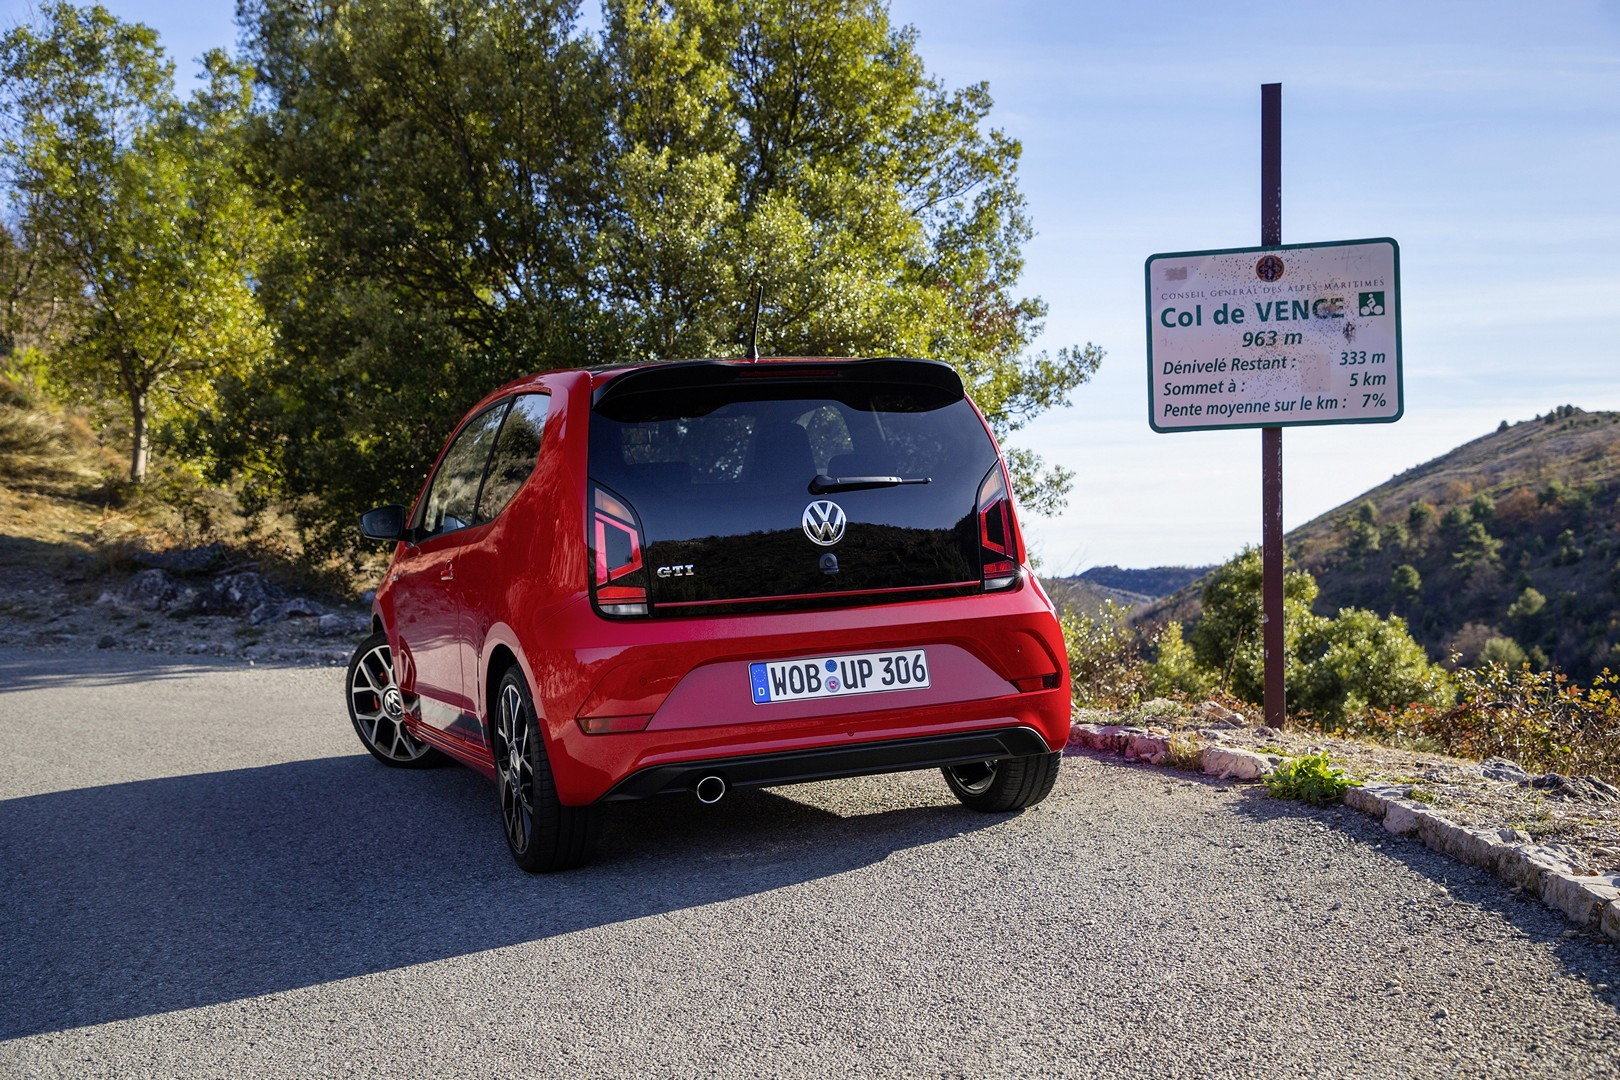 volkswagen up gti review just right or not enough. Black Bedroom Furniture Sets. Home Design Ideas